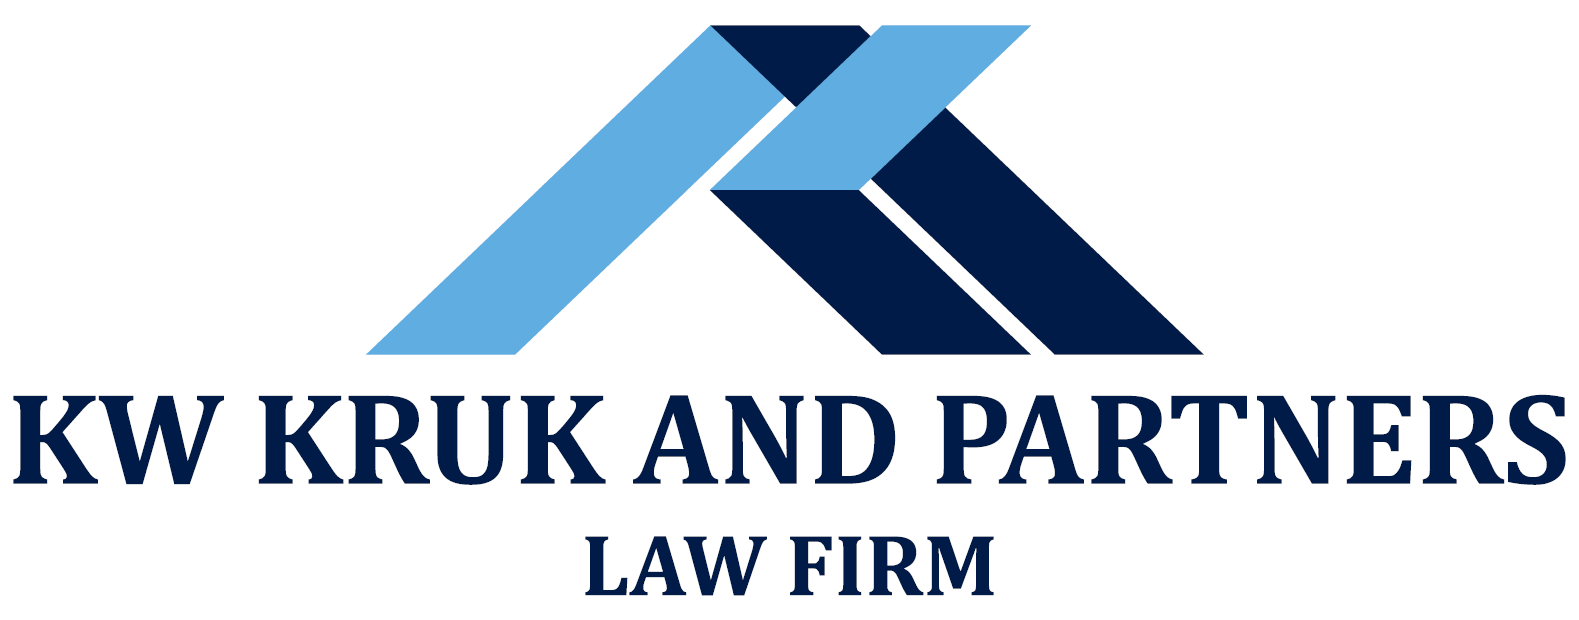 KW KRUK AND PARTNERS LAW FIRM LP logo